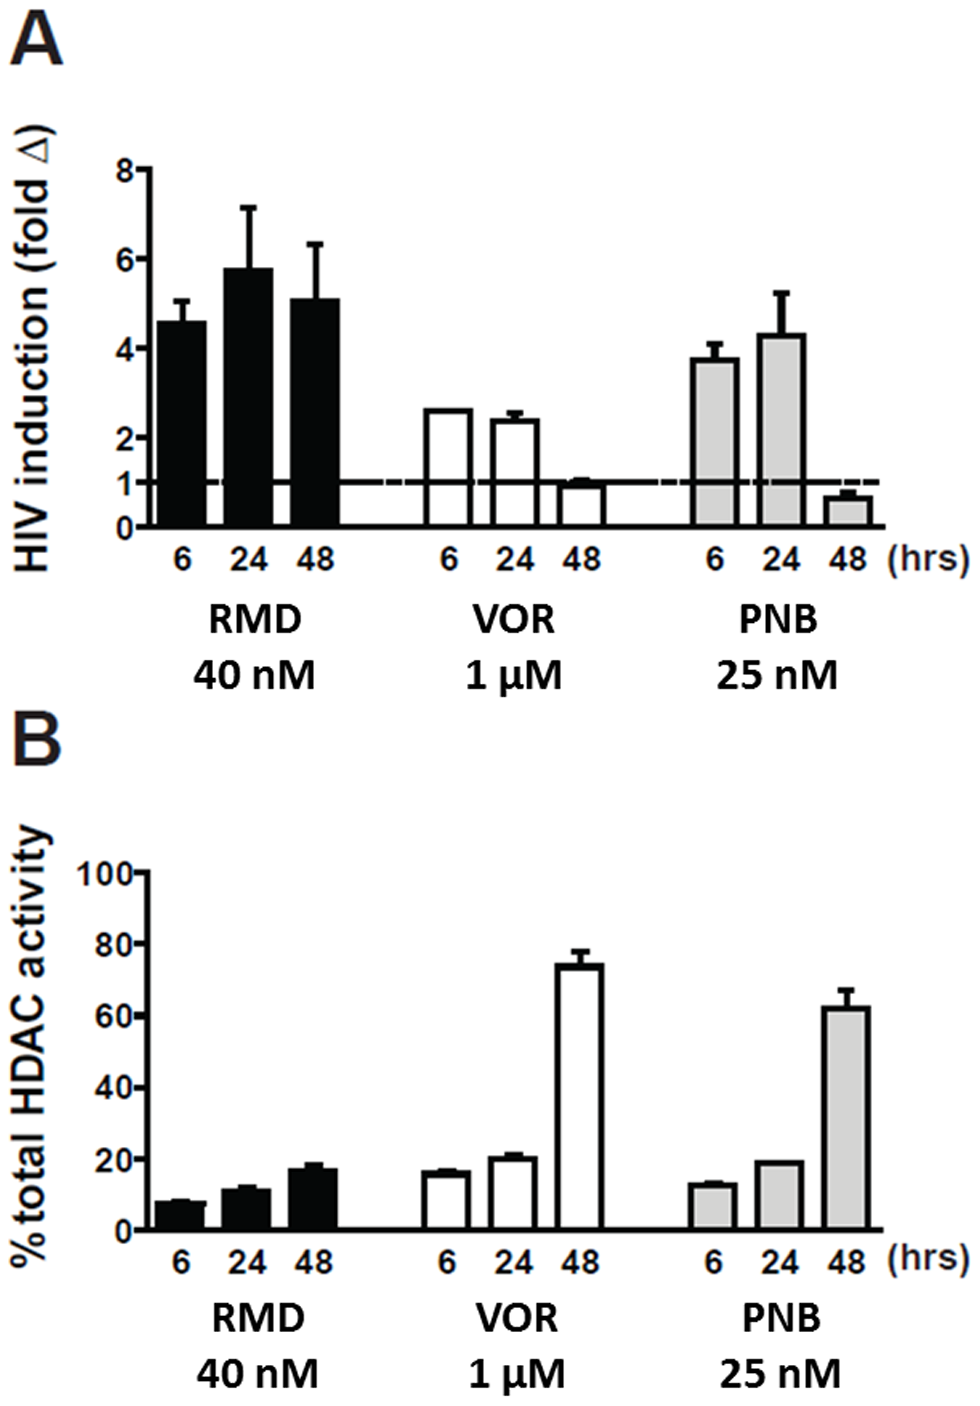 Induction of HIV expression and inhibition of cell-associated HDAC activity by HDACi.